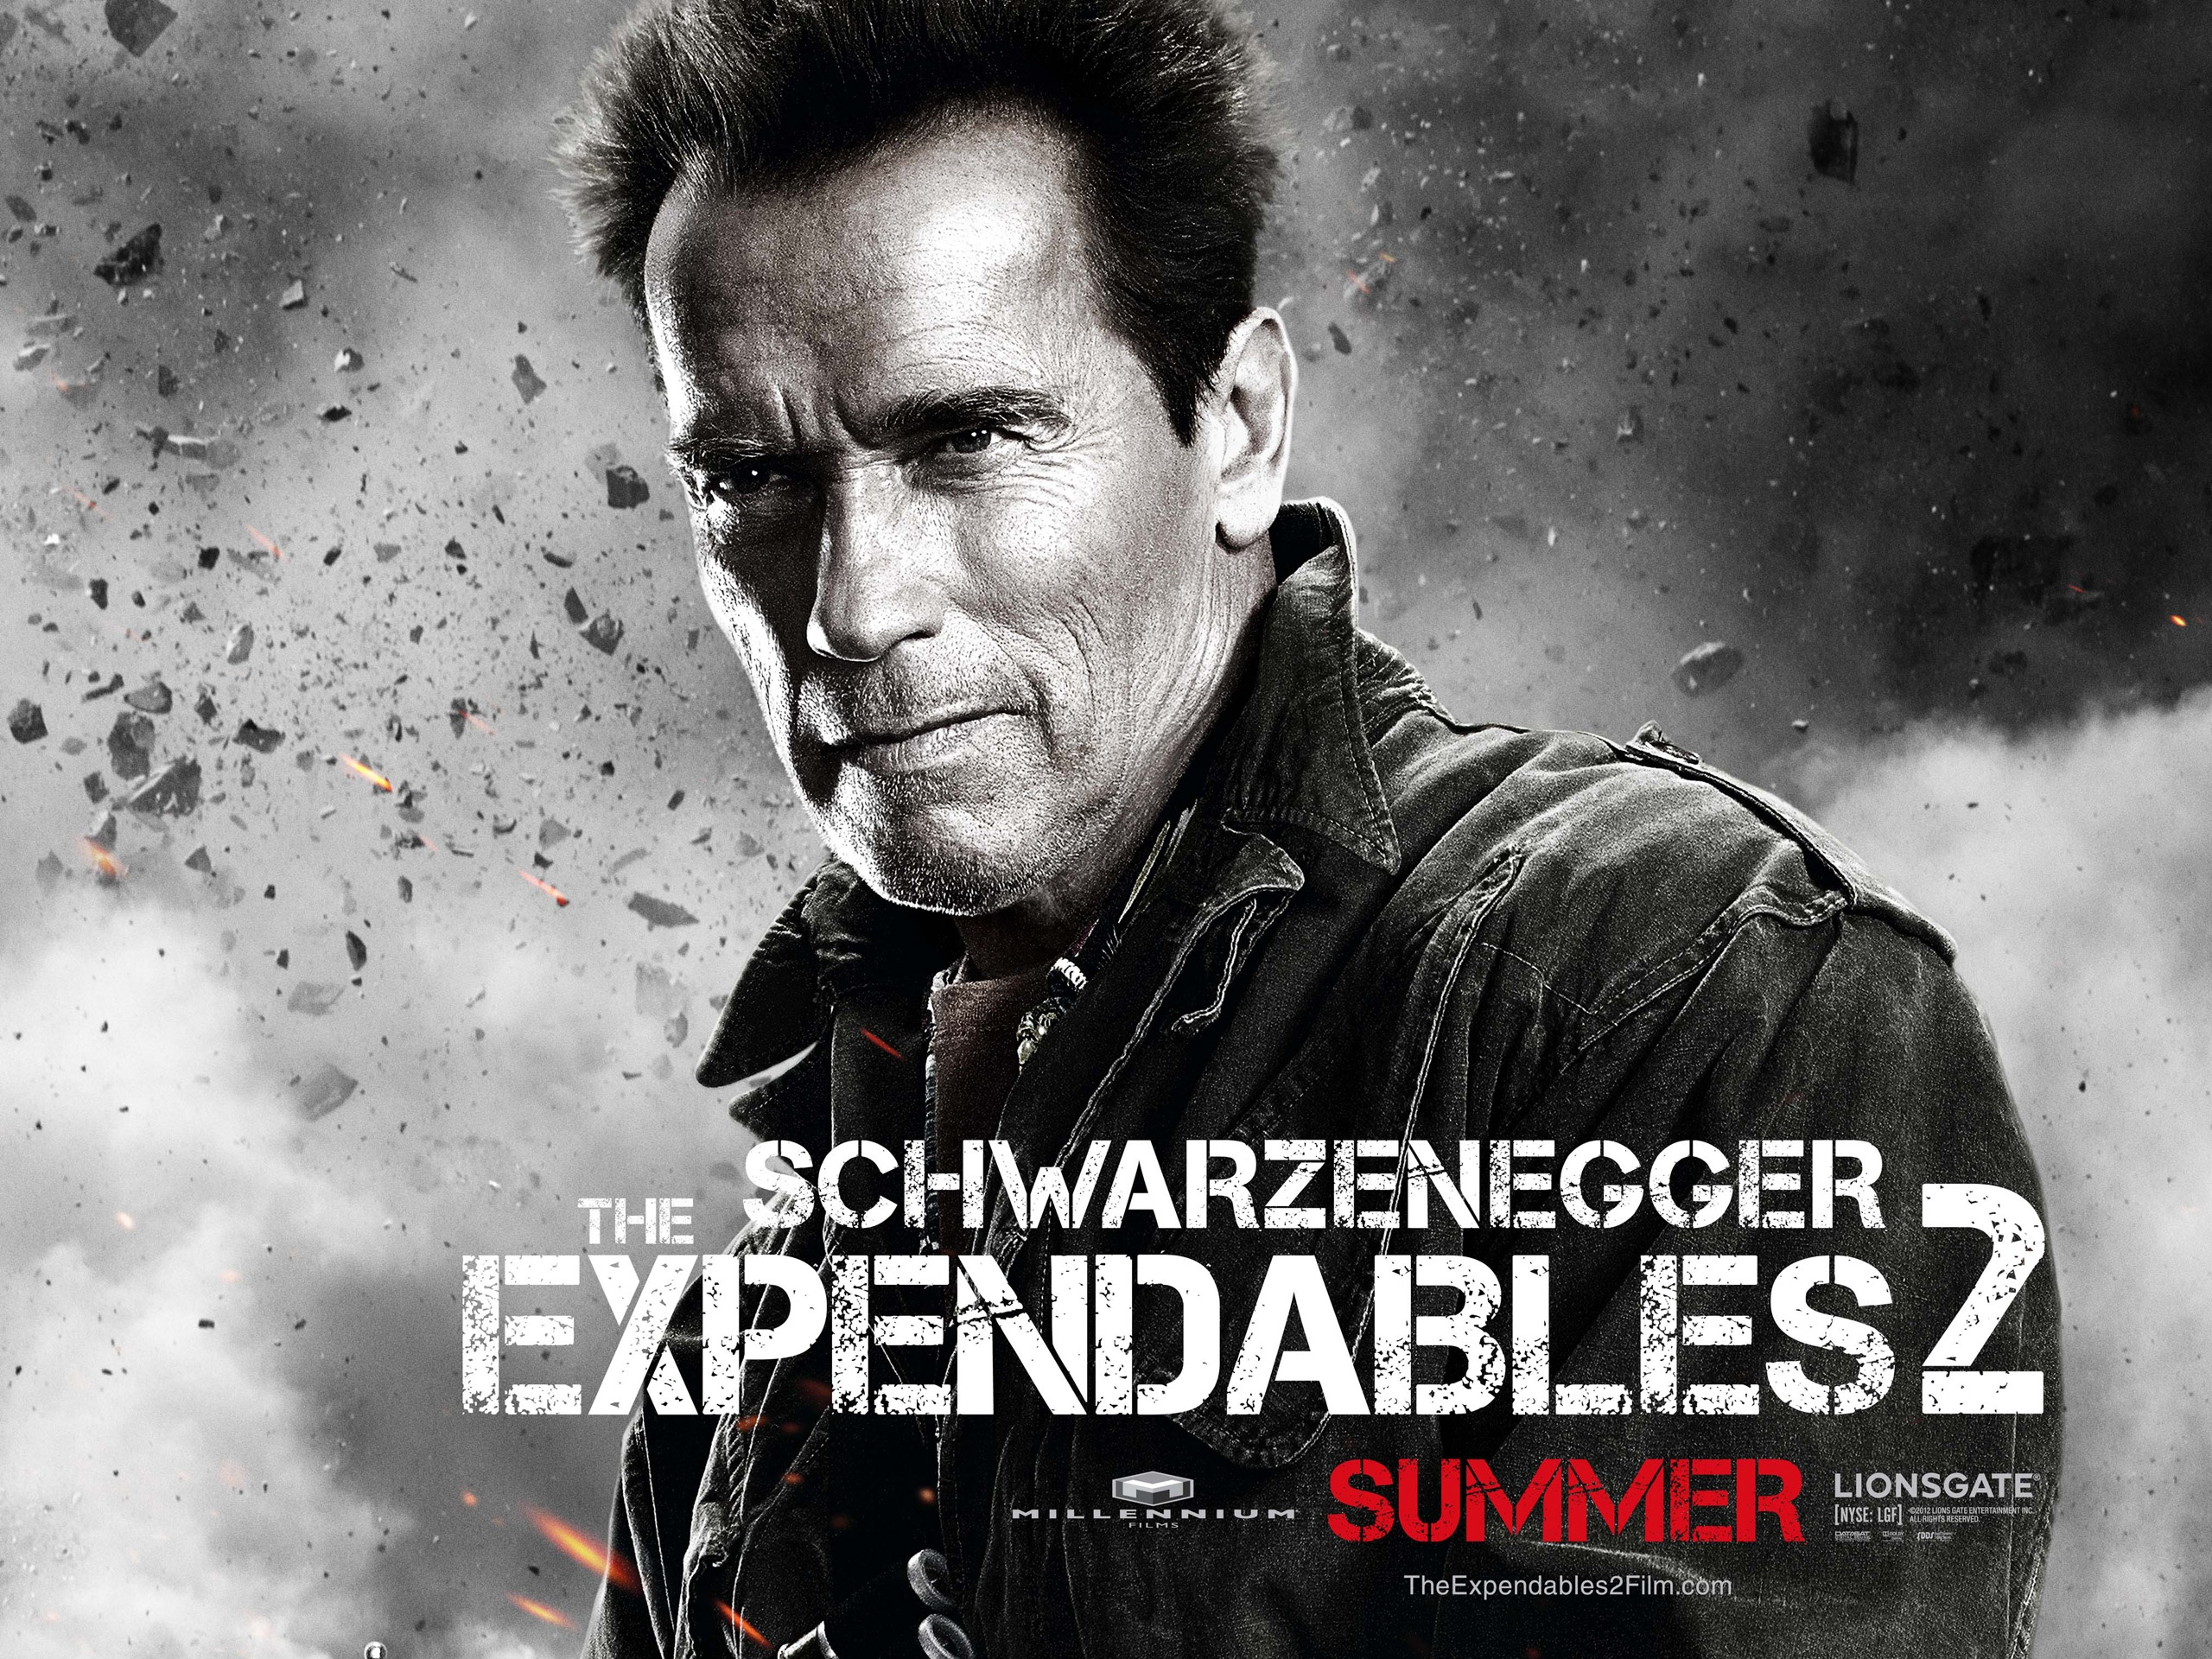 Wallpaper Arnold Schwarzenegger in The Expendables 2 movie